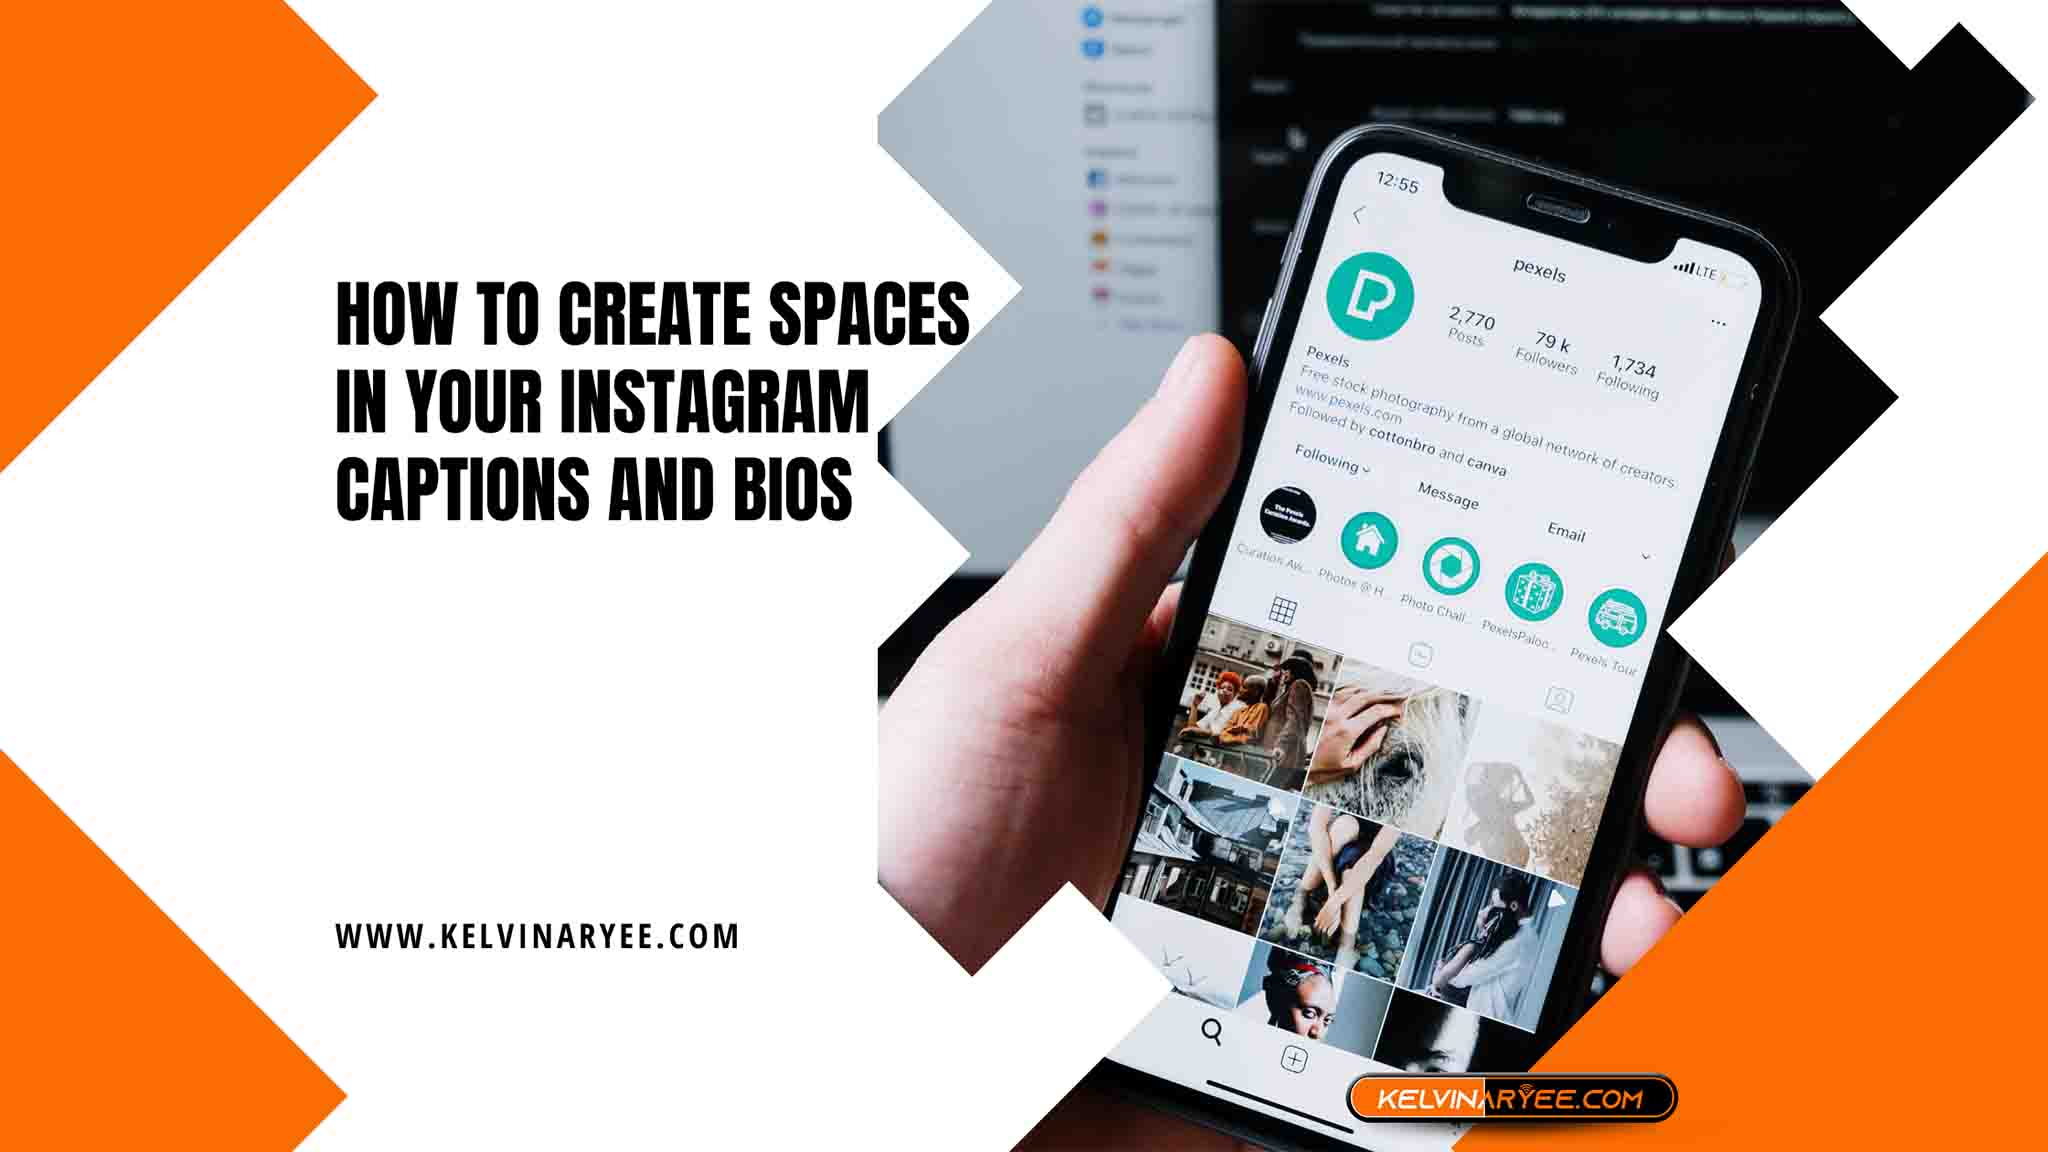 How to Create Spaces in Your Instagram Captions and Bios